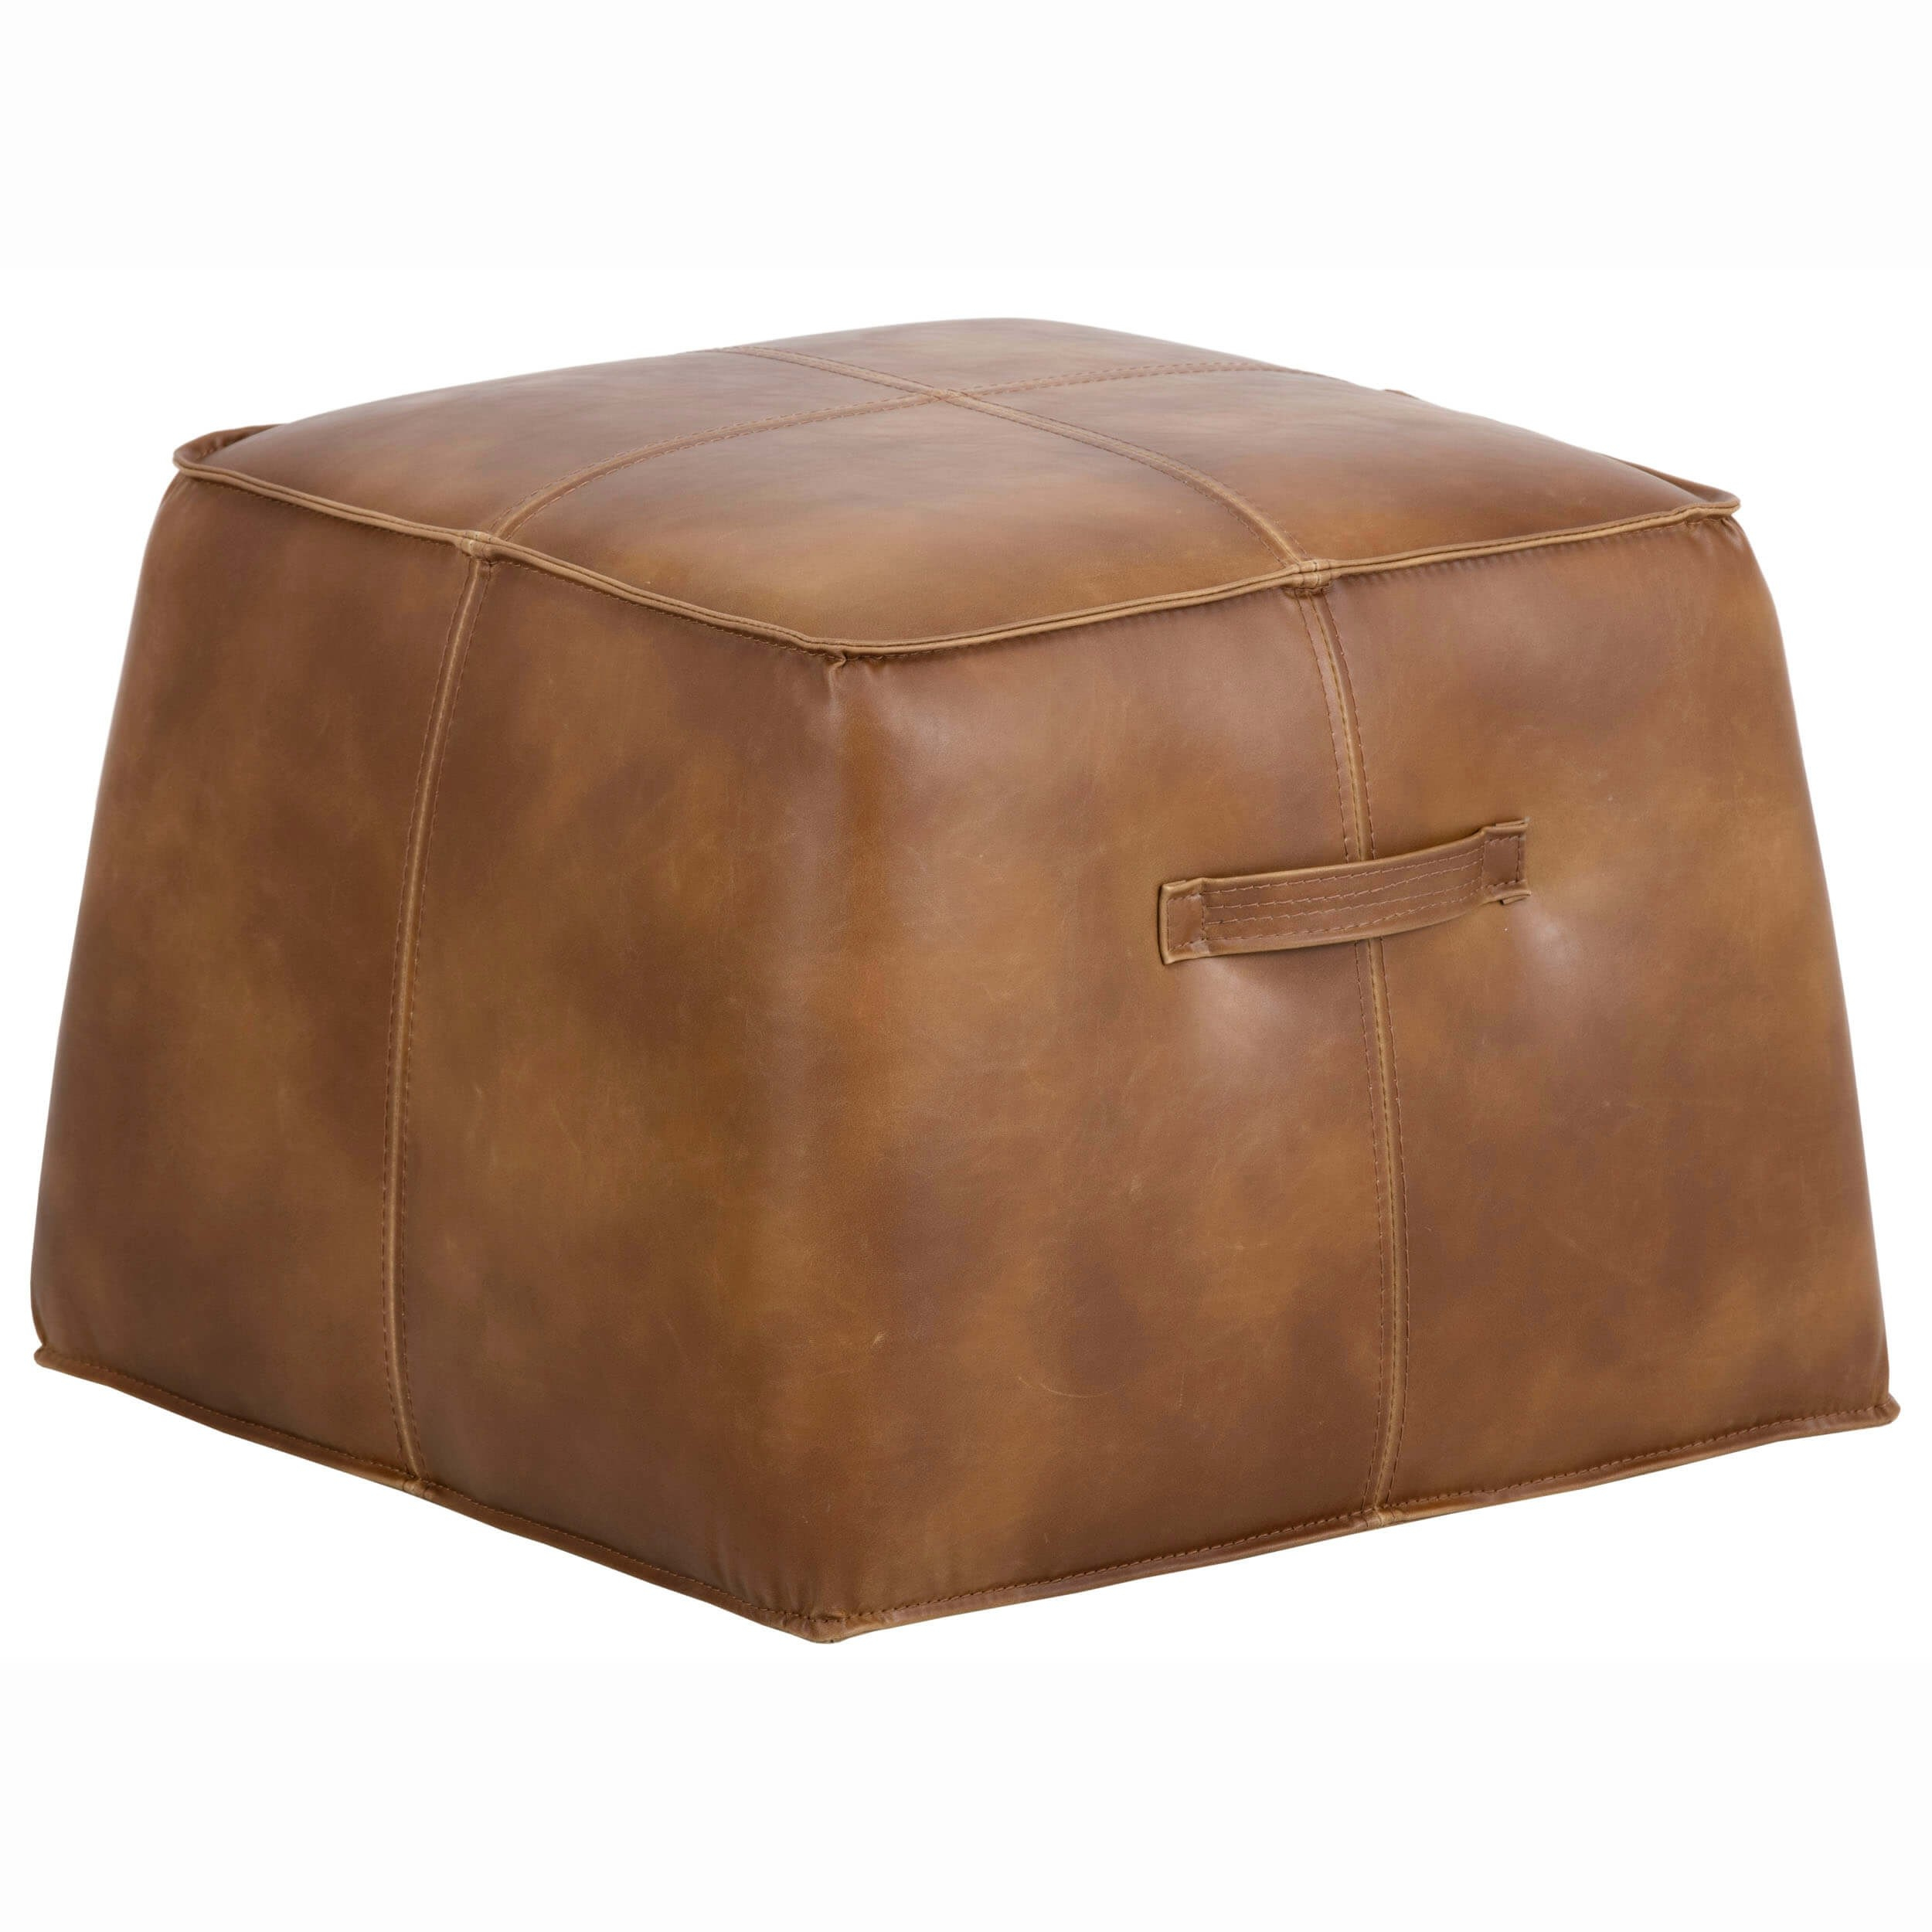 Aspen Ottoman, Tobacco Tan – Ottomans – Chairs – Furniture For Aspen Swivel Chairs (View 18 of 25)